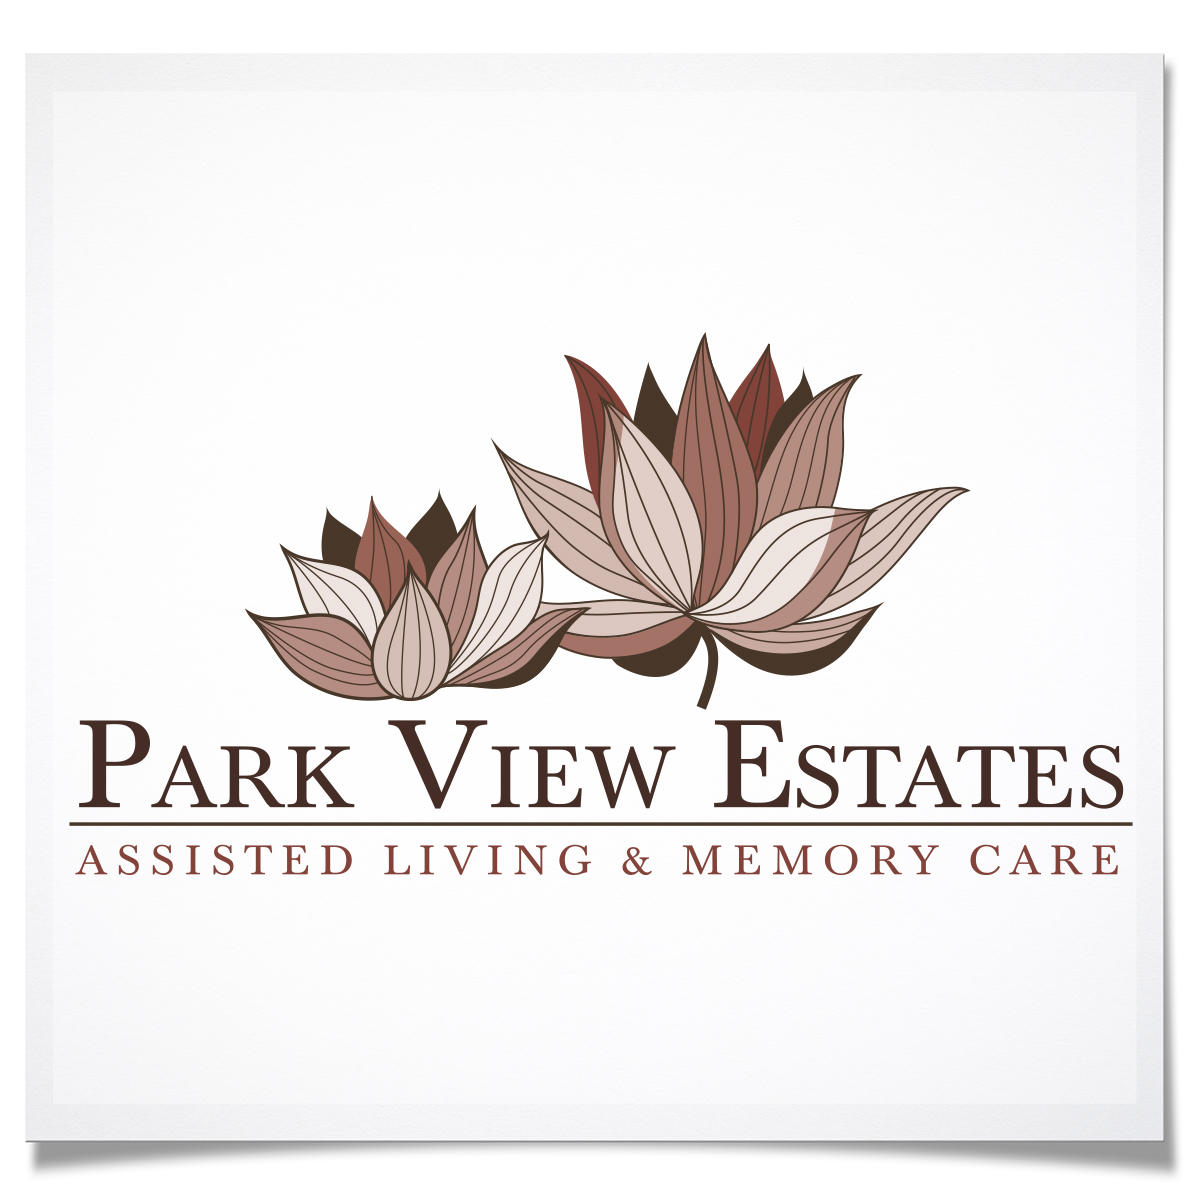 Park View Estates Assisted Living & Memory Care